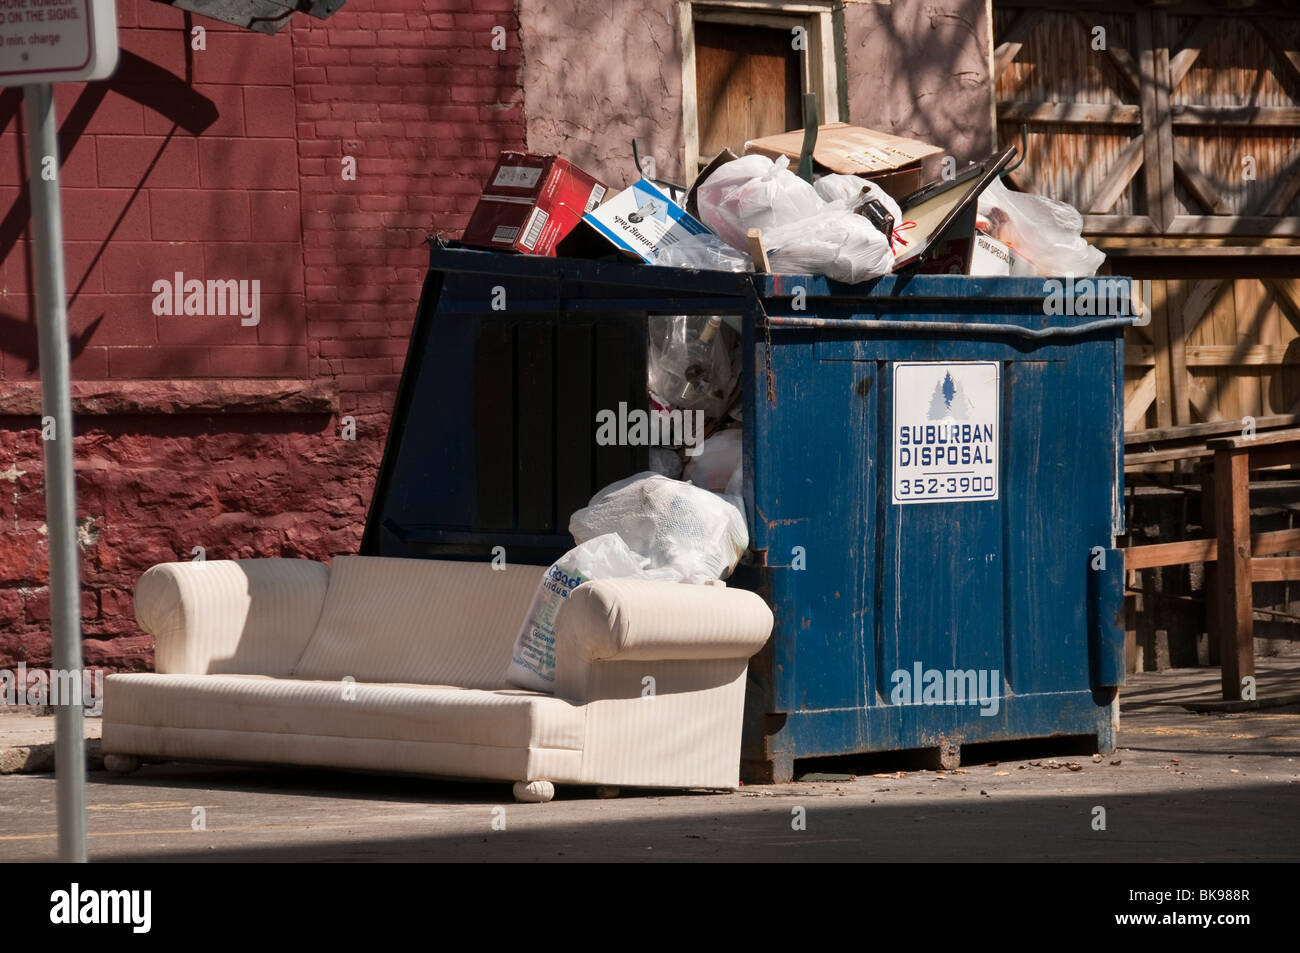 Trash Dumpster Behind Office Building Stock Photo 29092919 Alamy